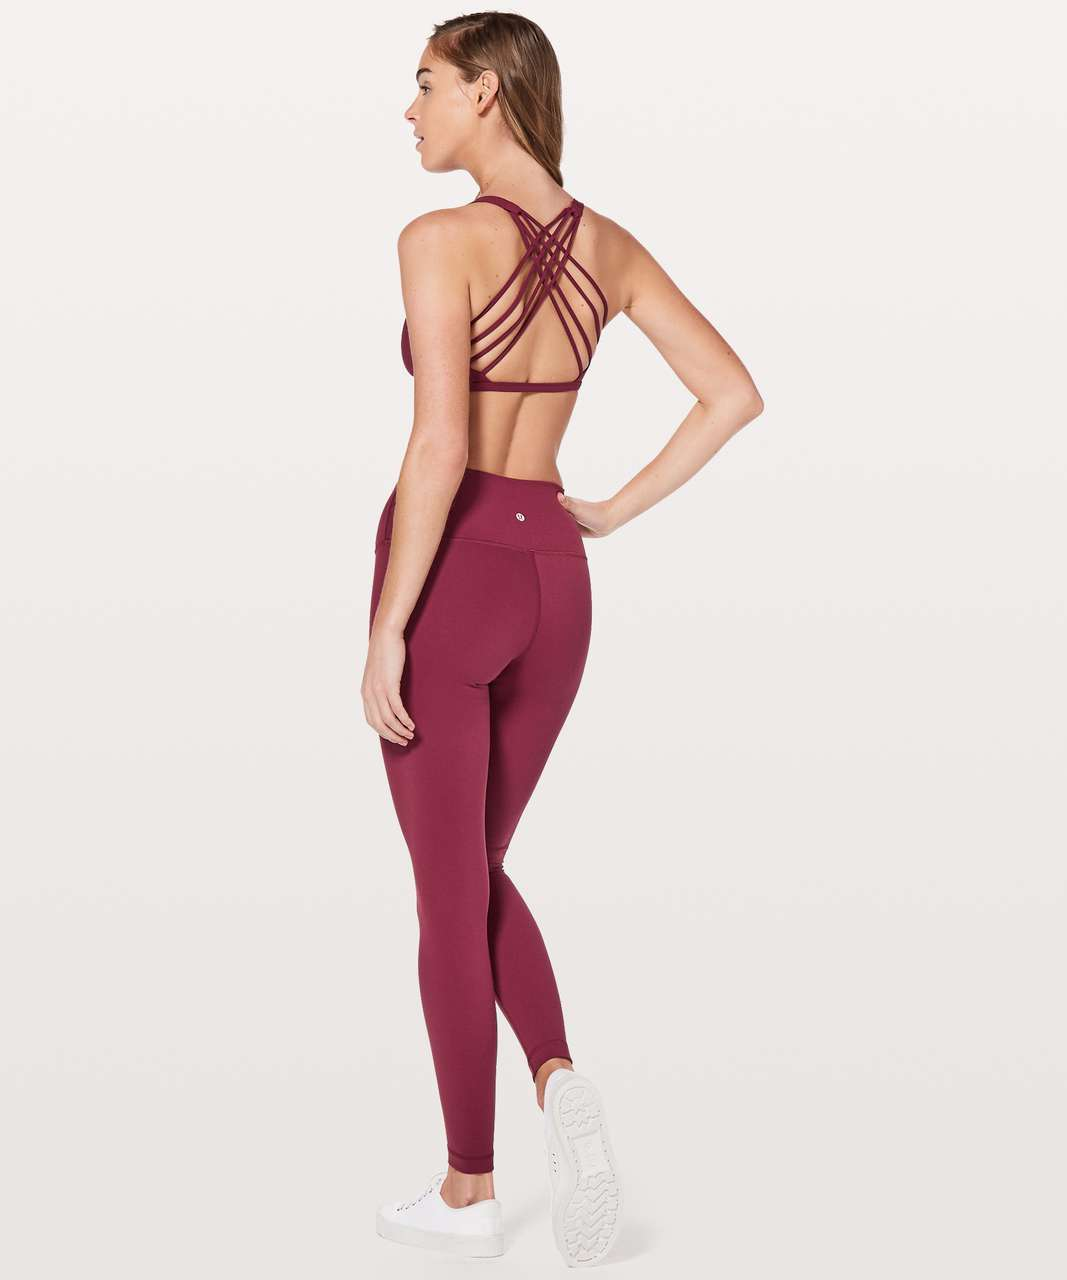 Lululemon Free To Be Bra (Wild) - Ruby Wine